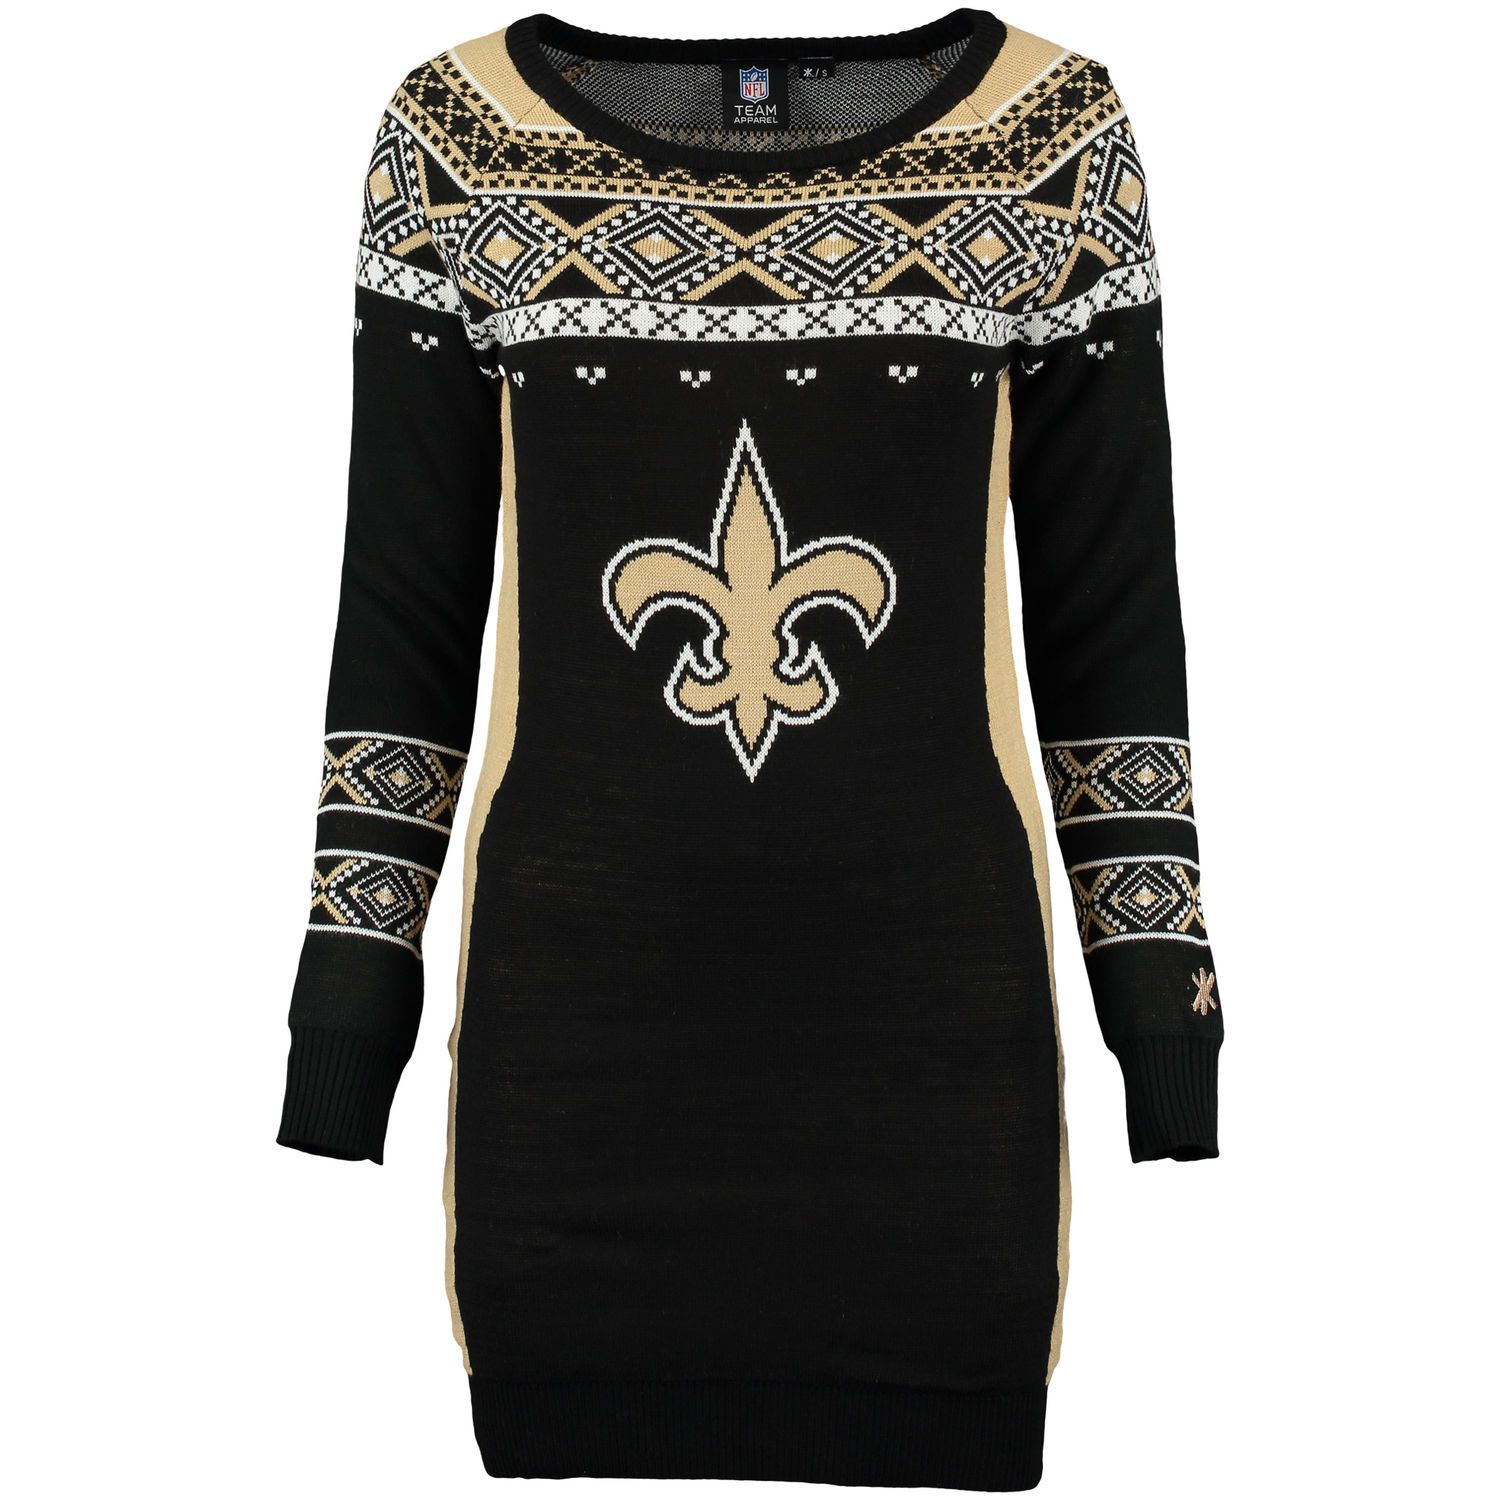 New orleans saints klew womenus big logo ugly sweater dress black